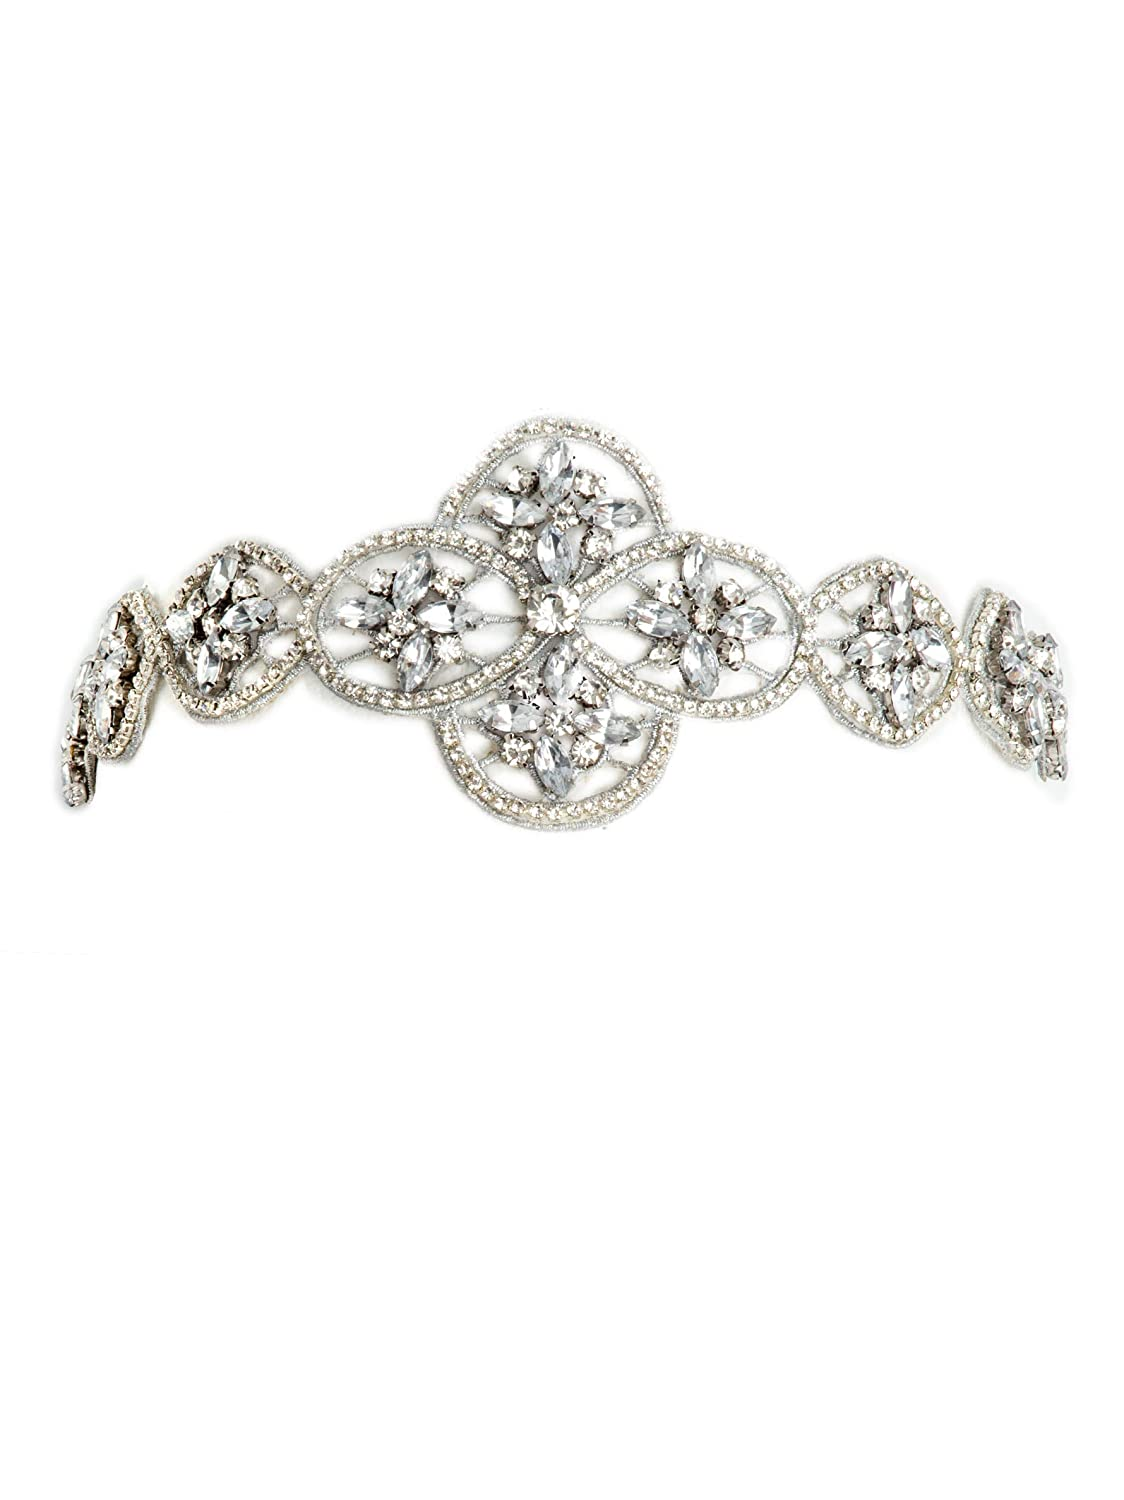 Vintage Style Jewelry, Retro Jewelry Bohomonde Indira Headband Crystal Rhinestone Fancy Formal Beaded Headband Boho Headpiece $12.99 AT vintagedancer.com